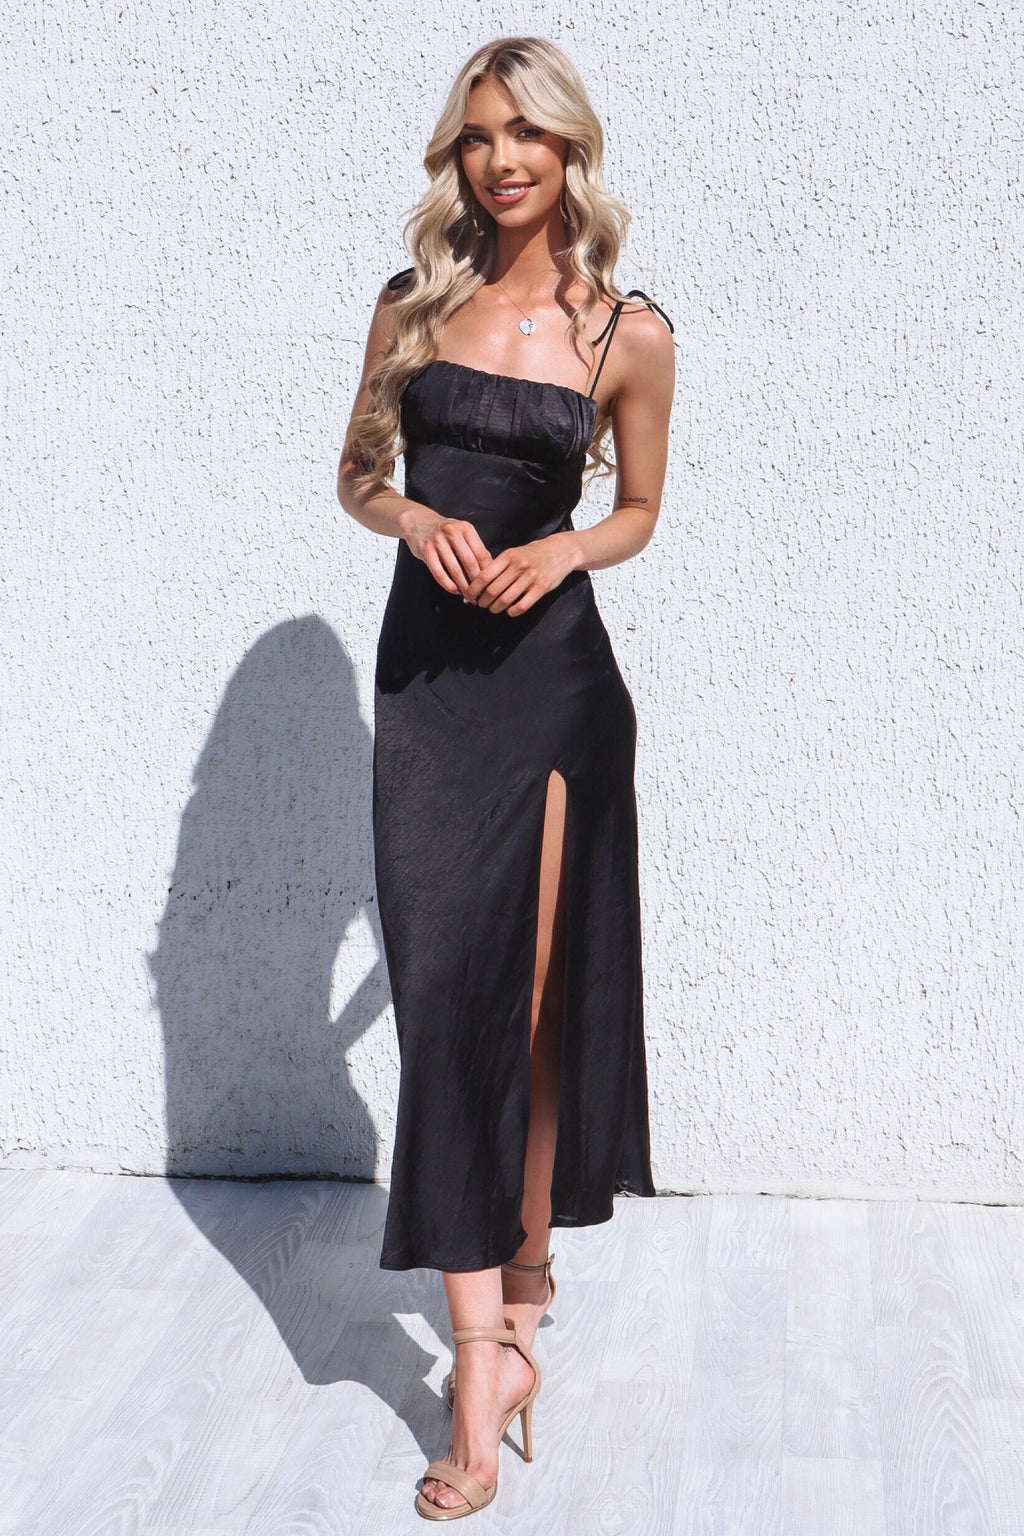 Marlee Satin Black Midi Dress